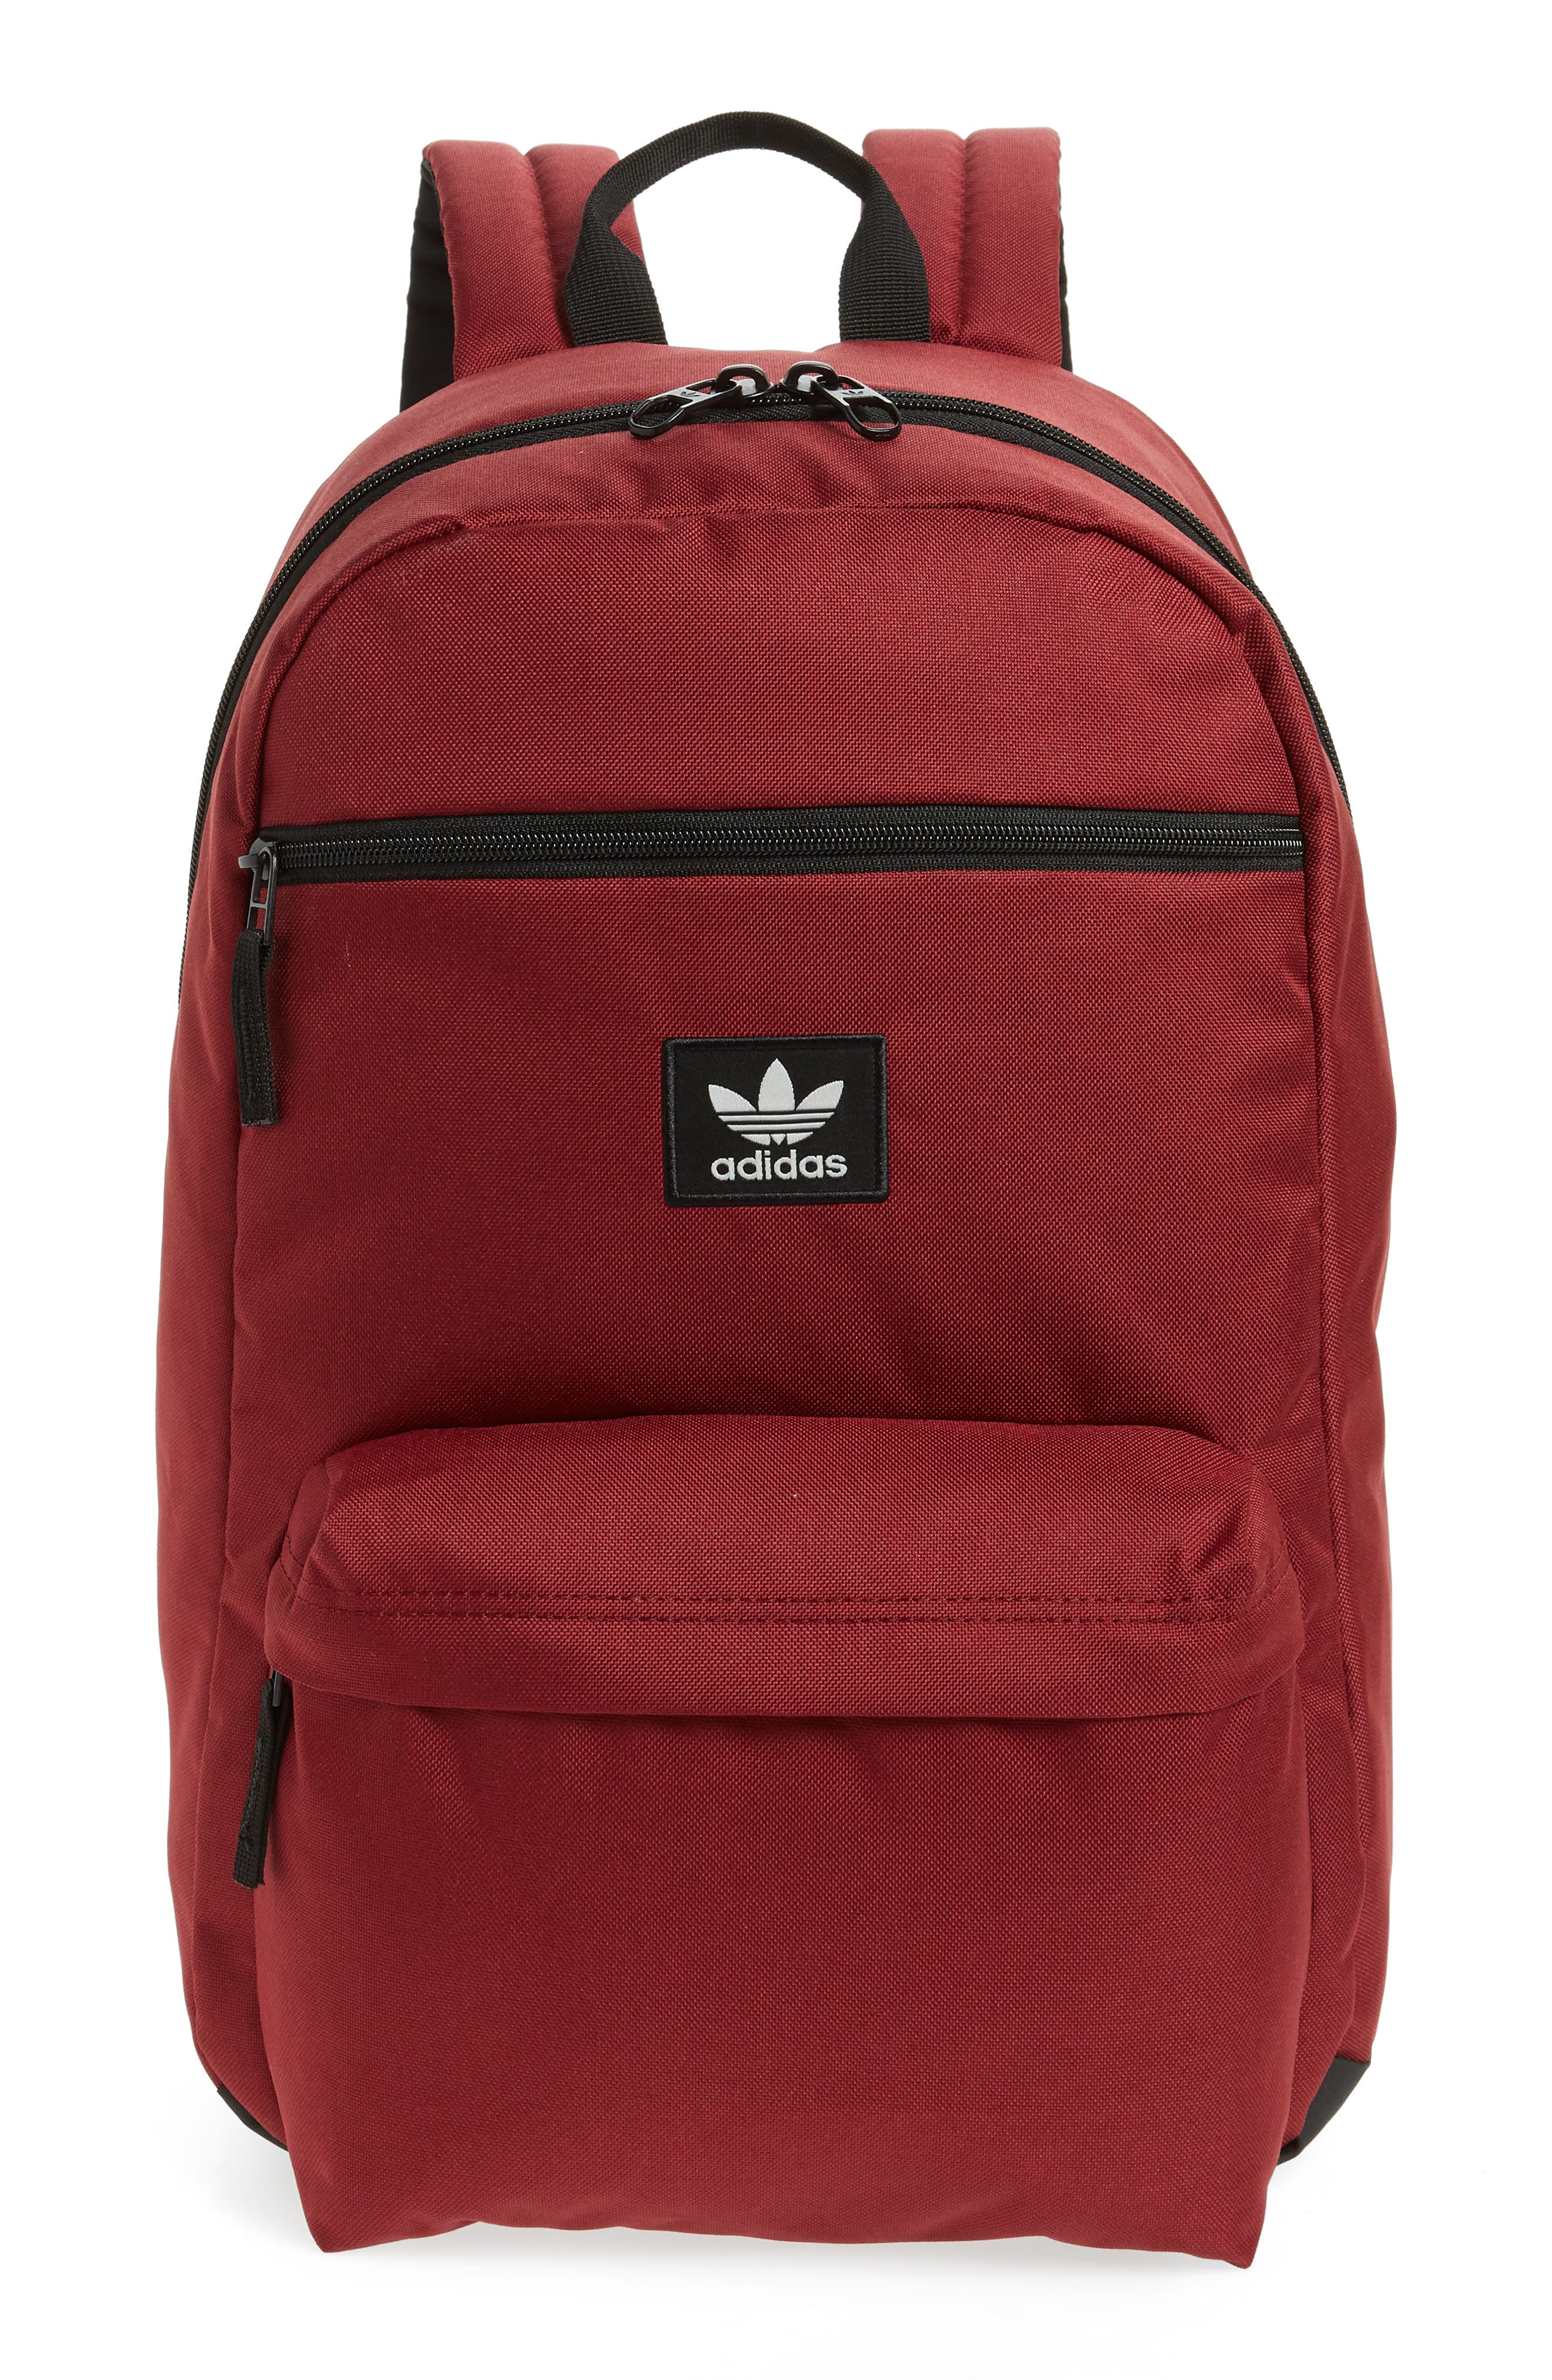 Adidas Original National Backpack - Red